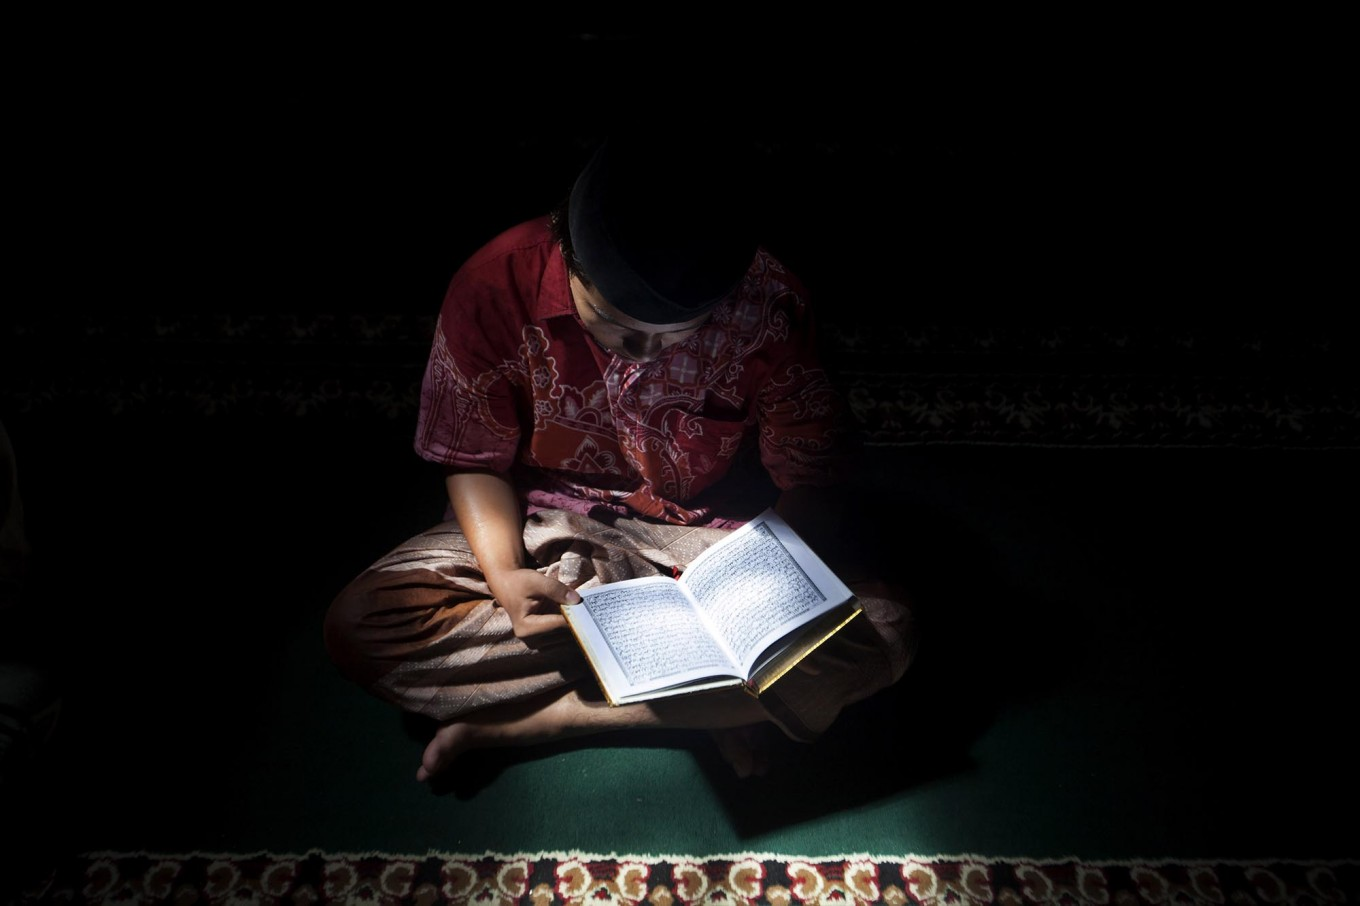 A student recites the Quran at the Lirboyo mosque. It is a routine activity for students at the boarding school. JP/Sigit Pamungkas